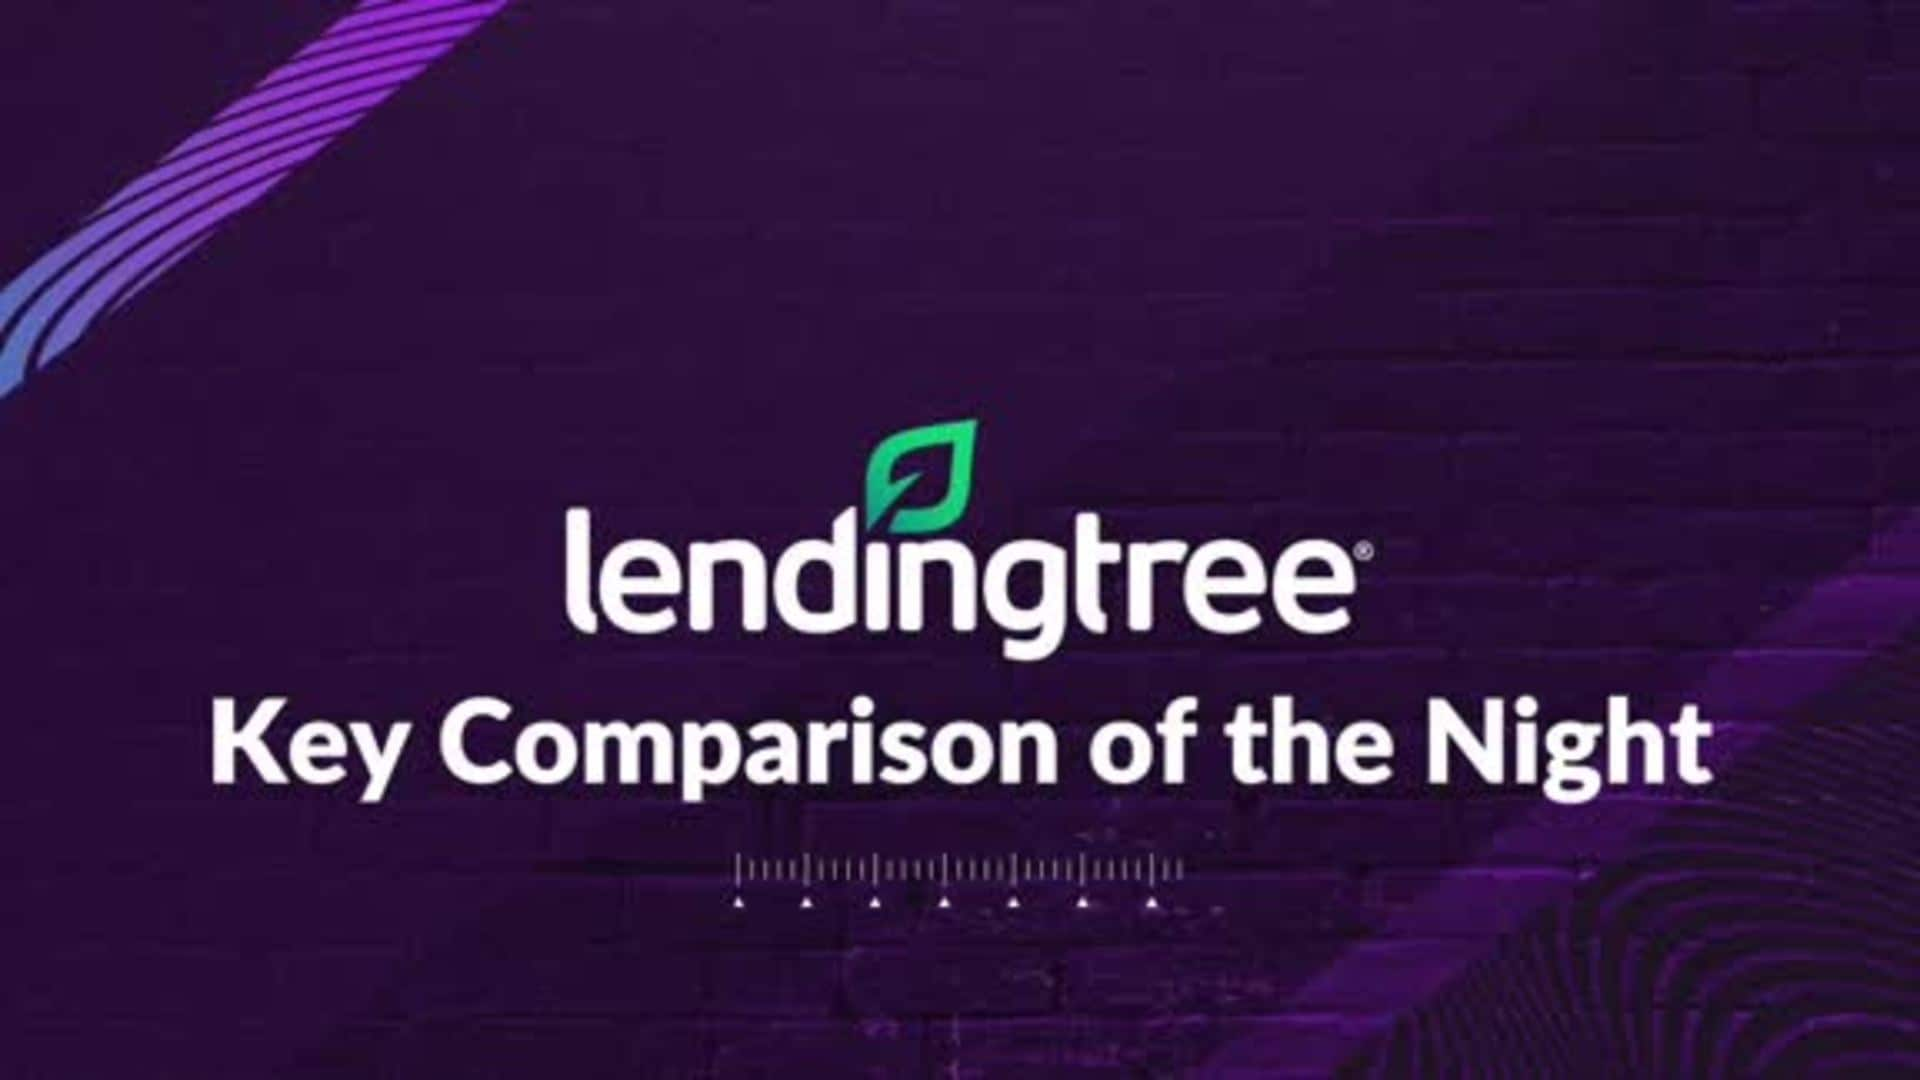 LendingTree's Key Comparison of the Night - 12/2/19